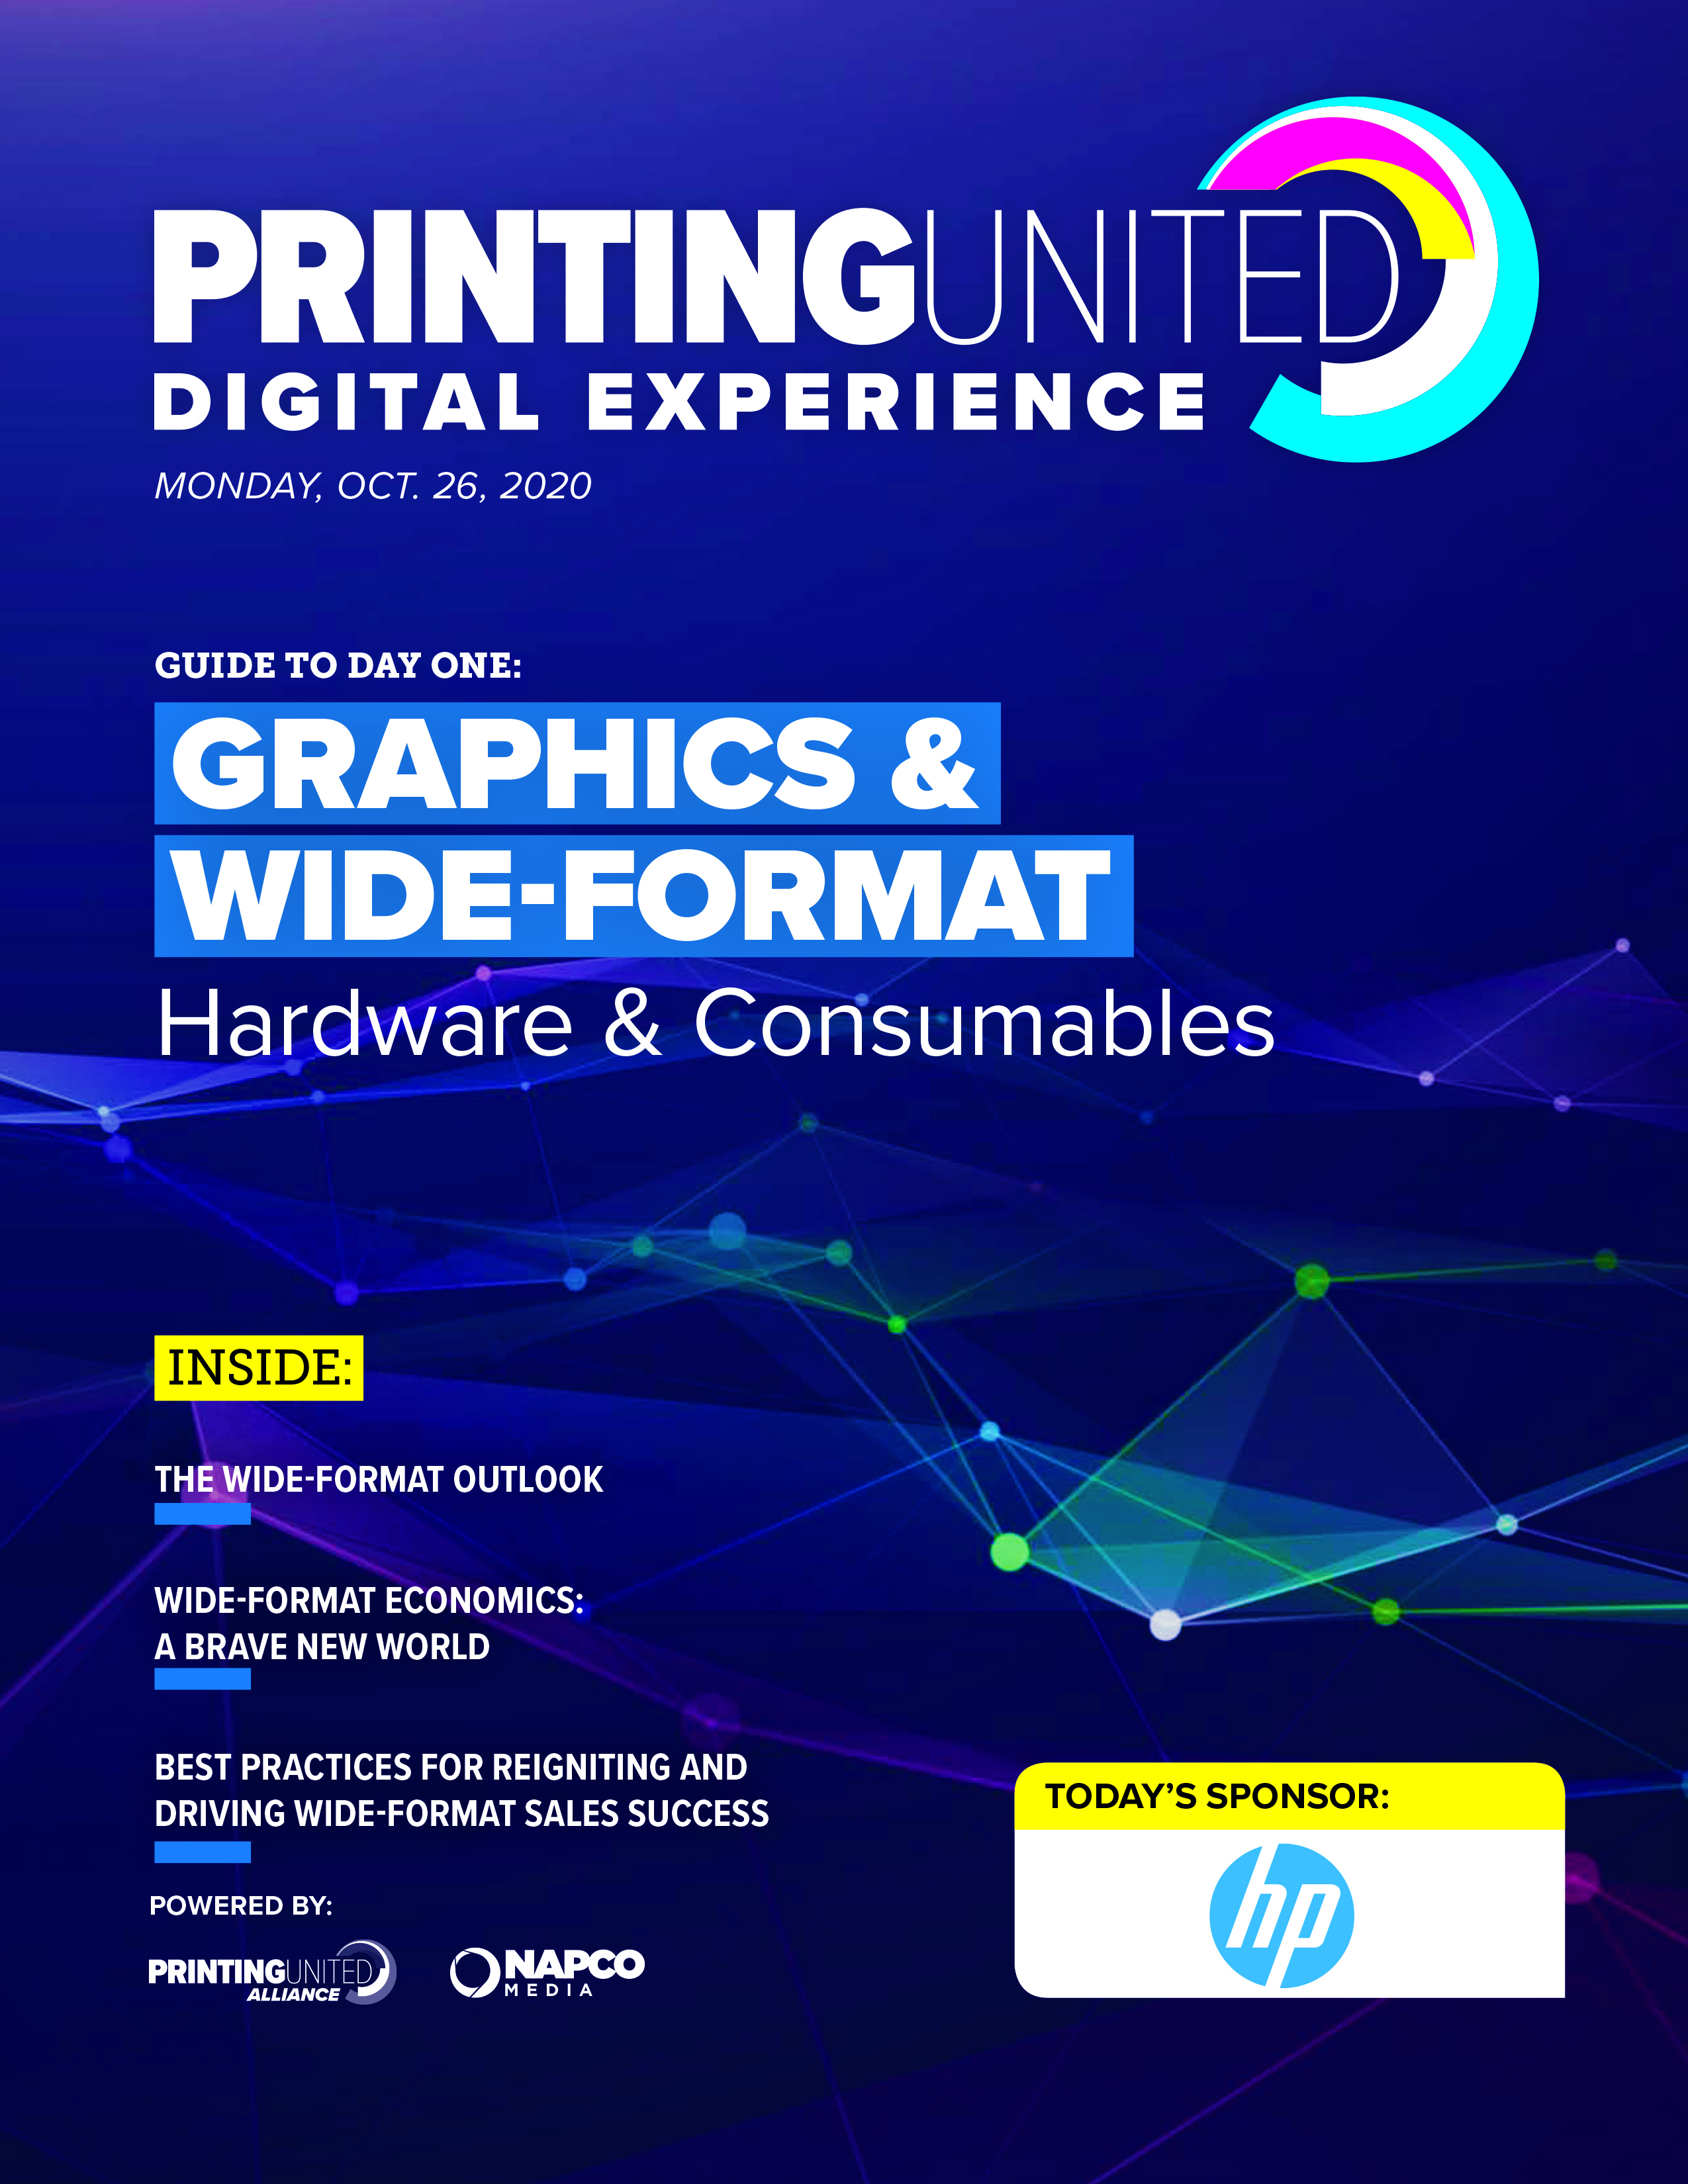 PRINTING United Digital Experience Day 1